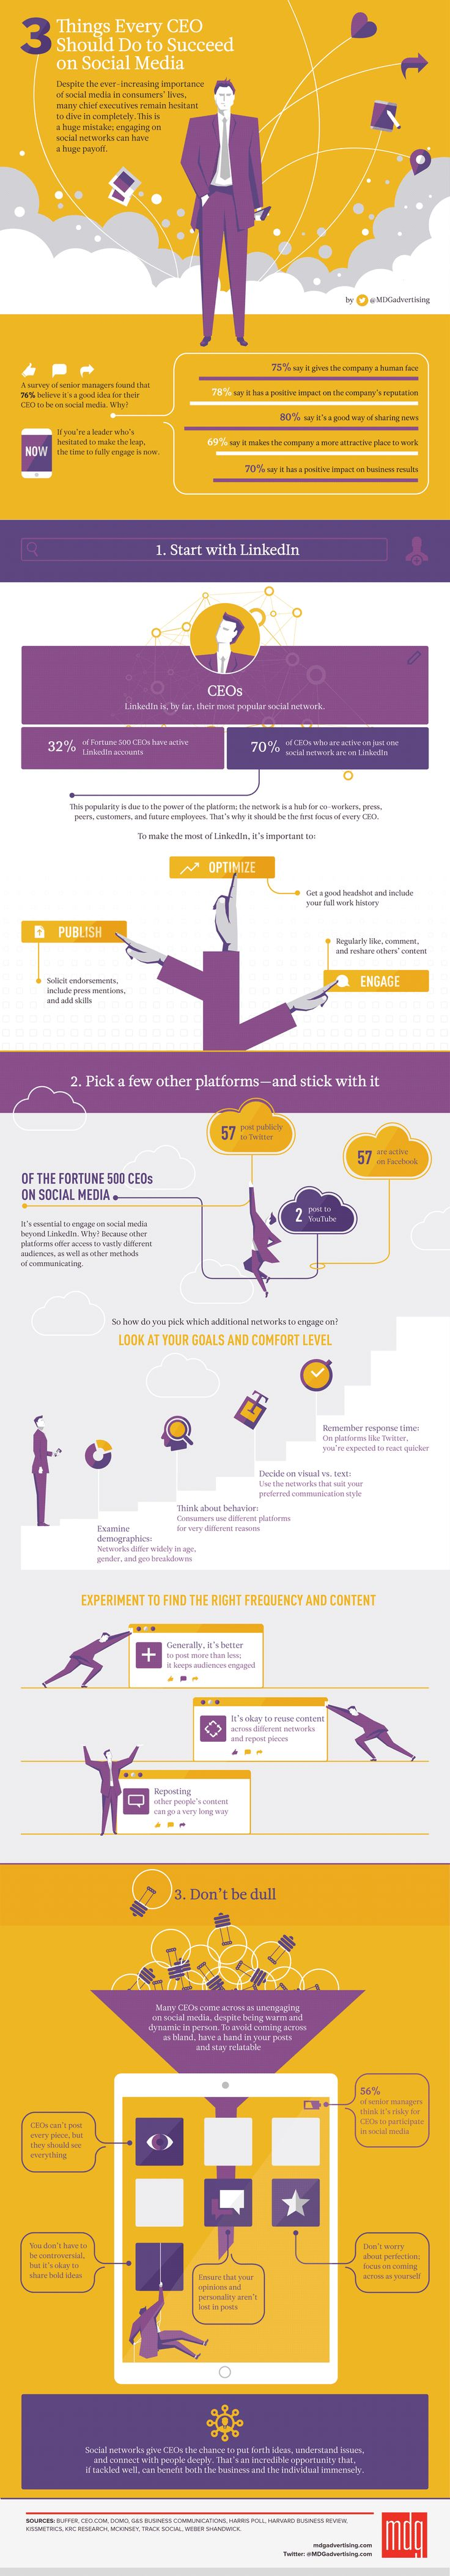 3 Things Every CEO Should Do to Succeed on Social Media #Infographic…